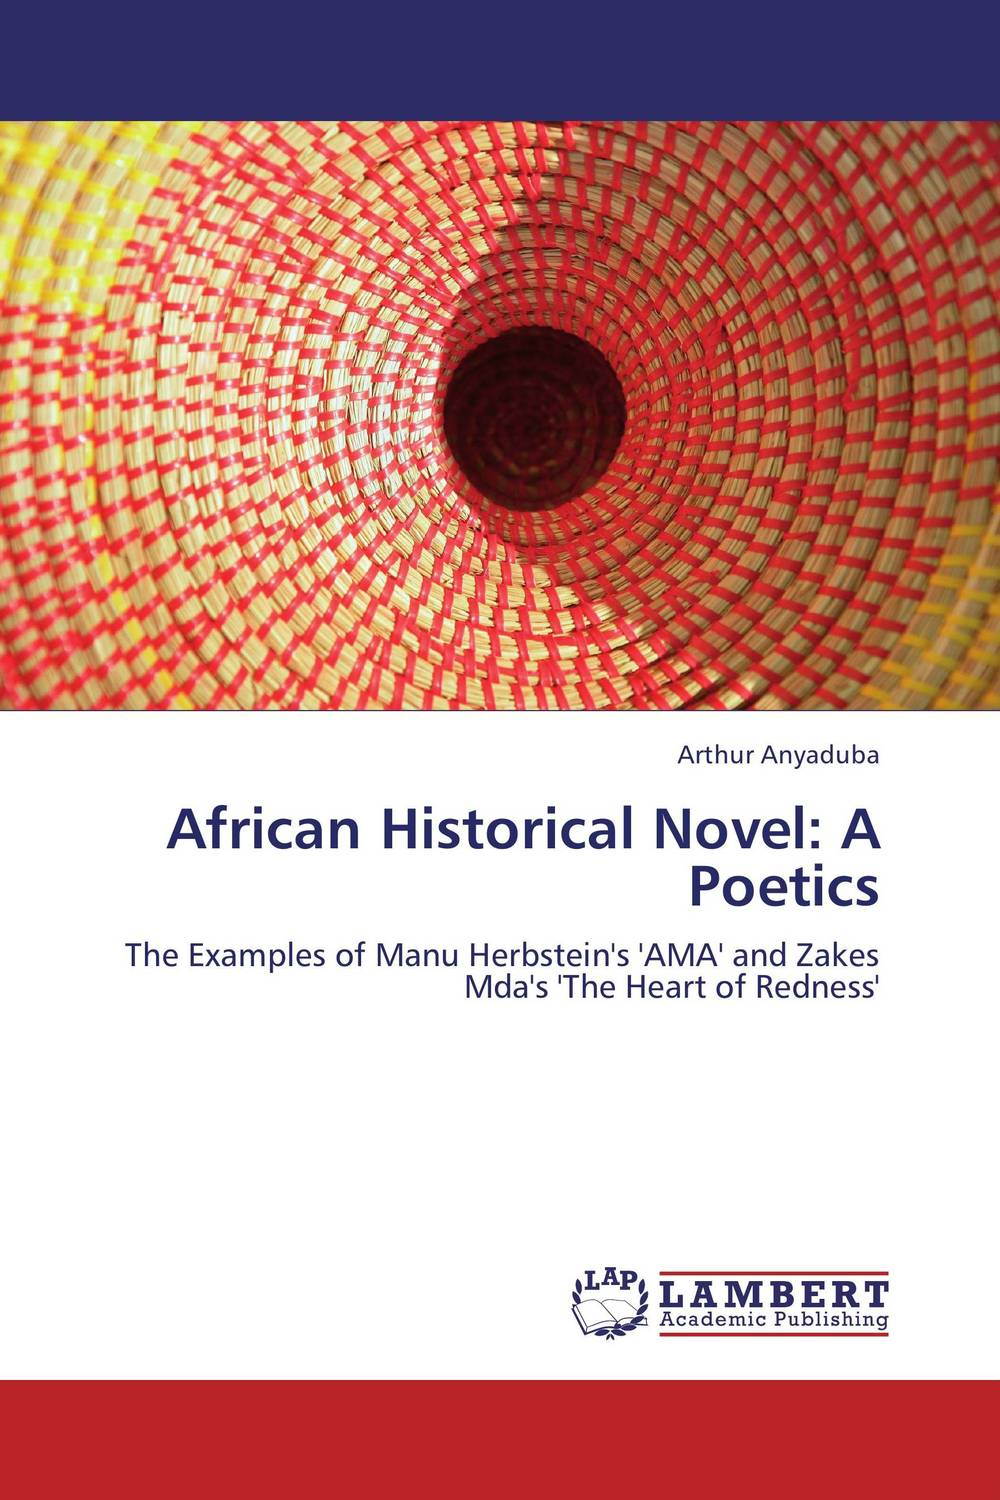 African Historical Novel: A Poetics tragedy authority and trickery – the poetics of embedded letters in josephus